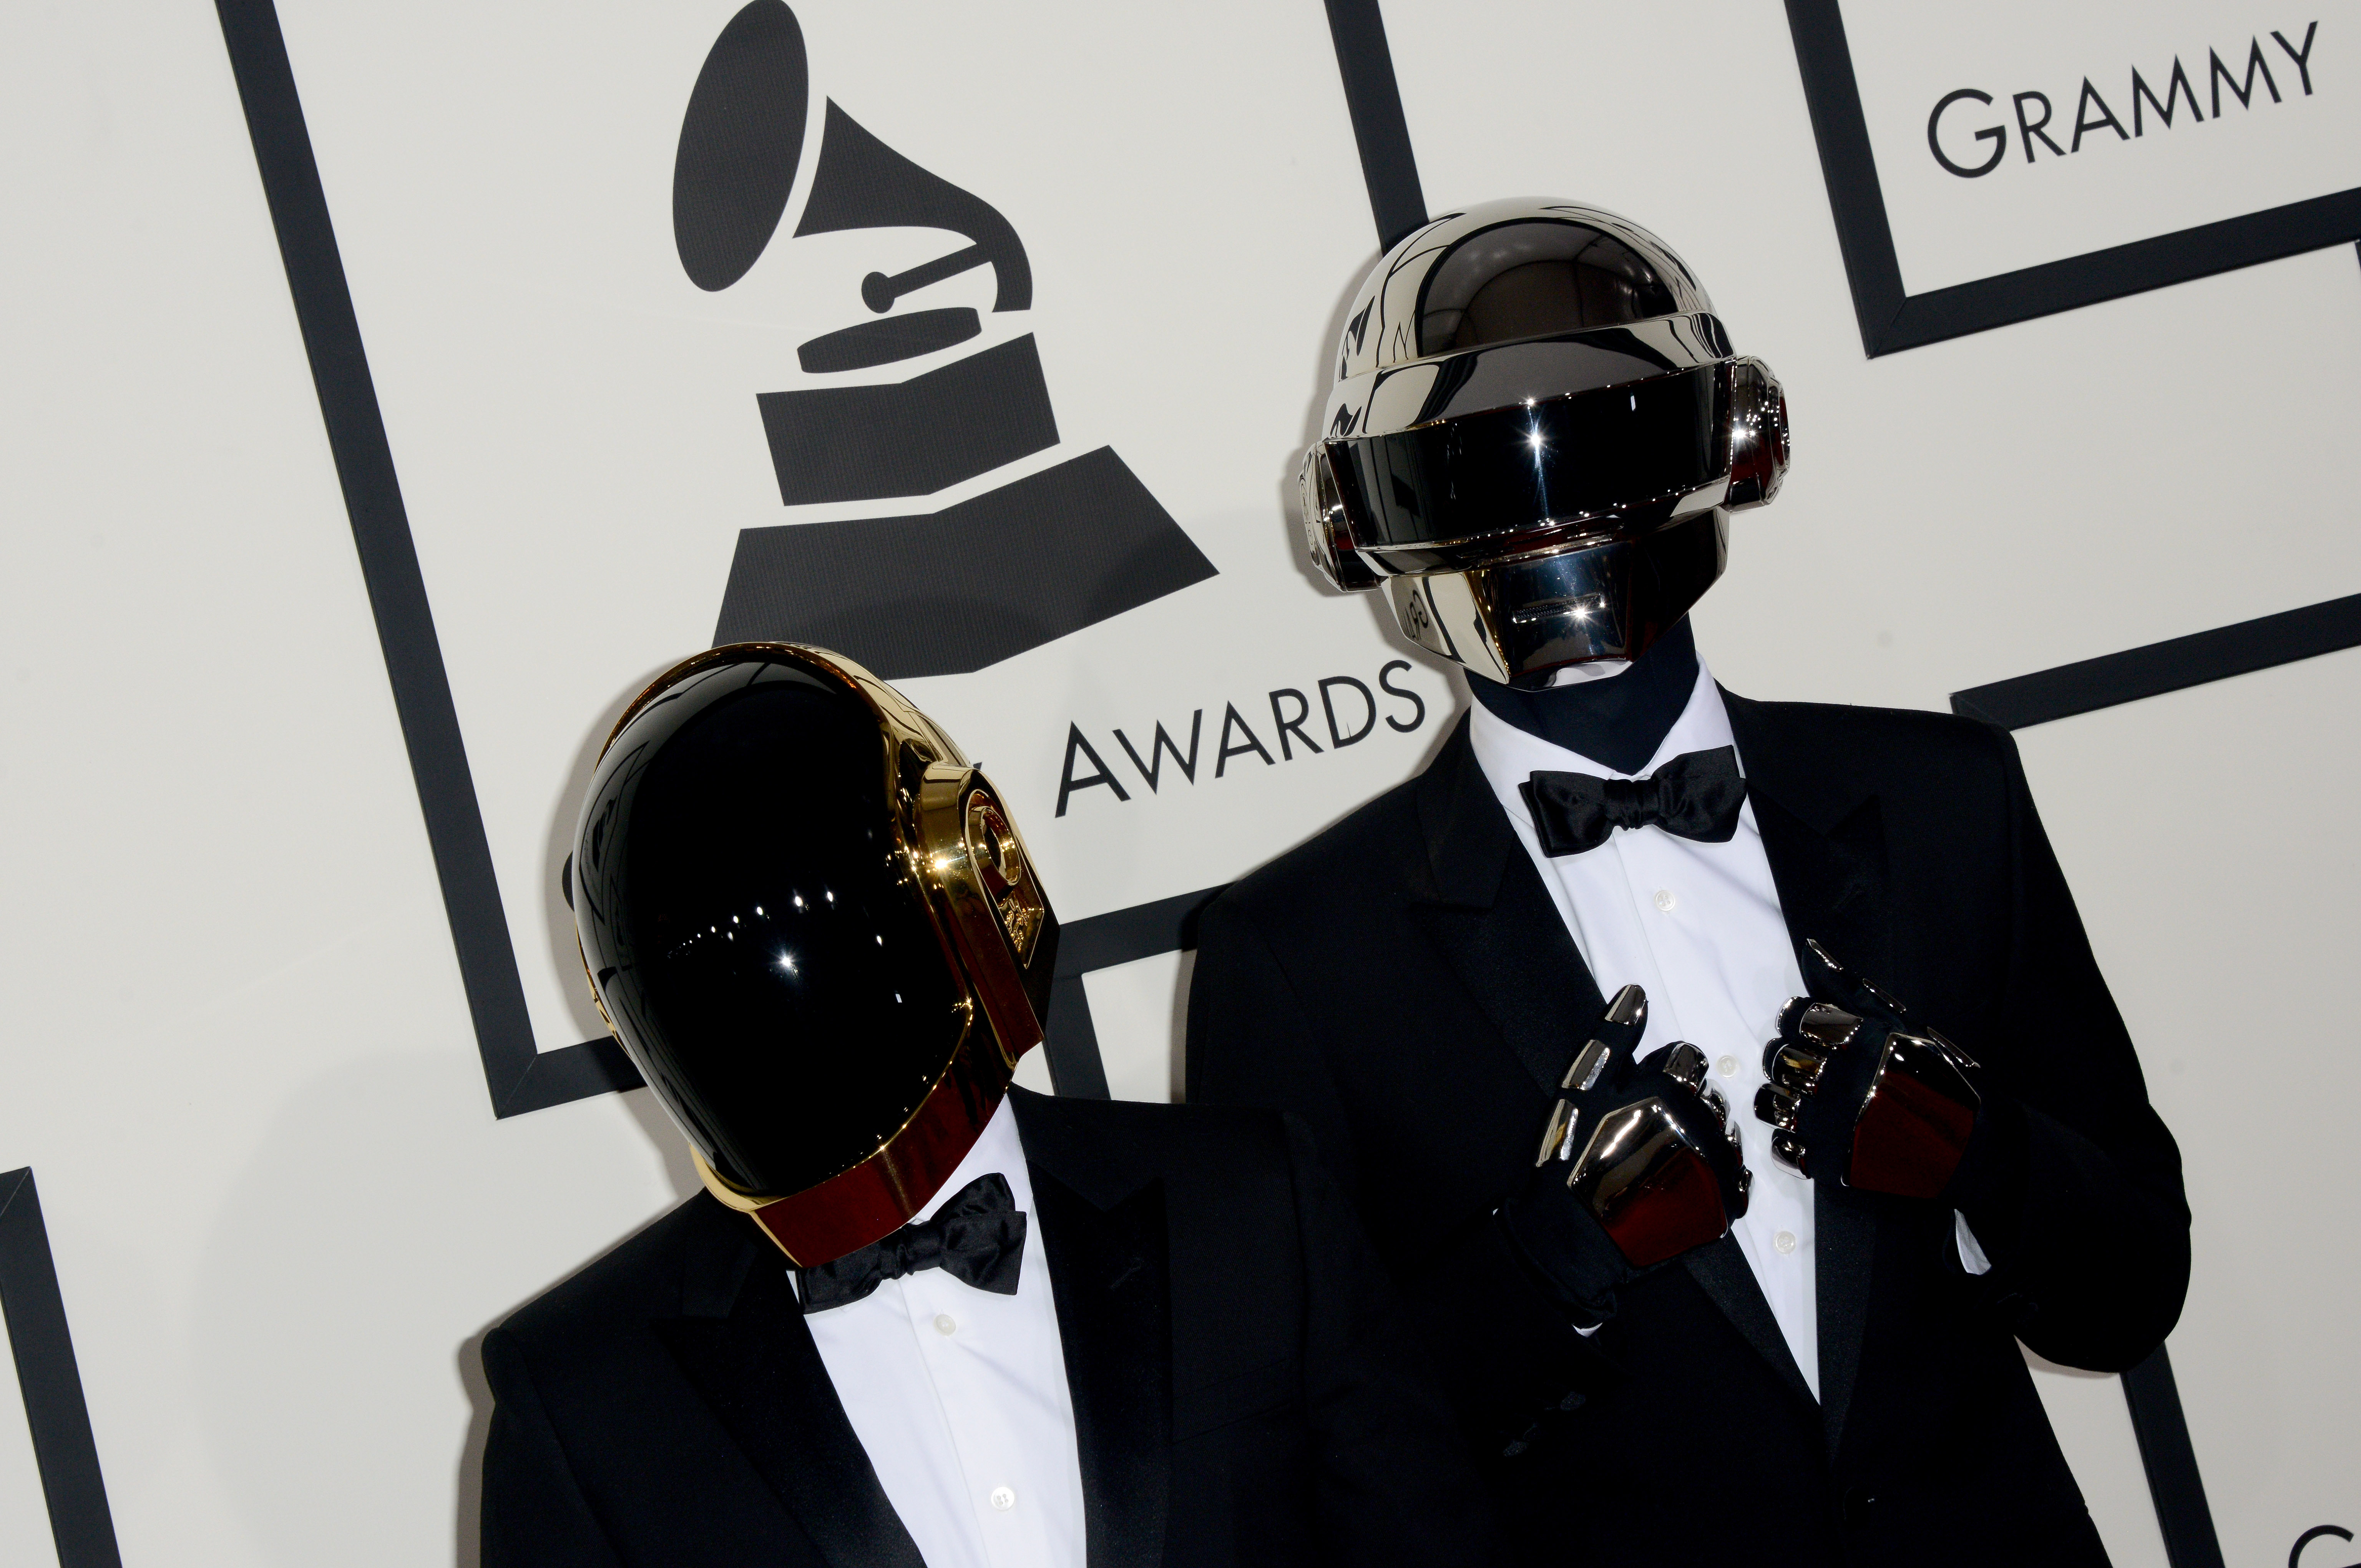 Daft Punk at the GRAMMY Awards 2014